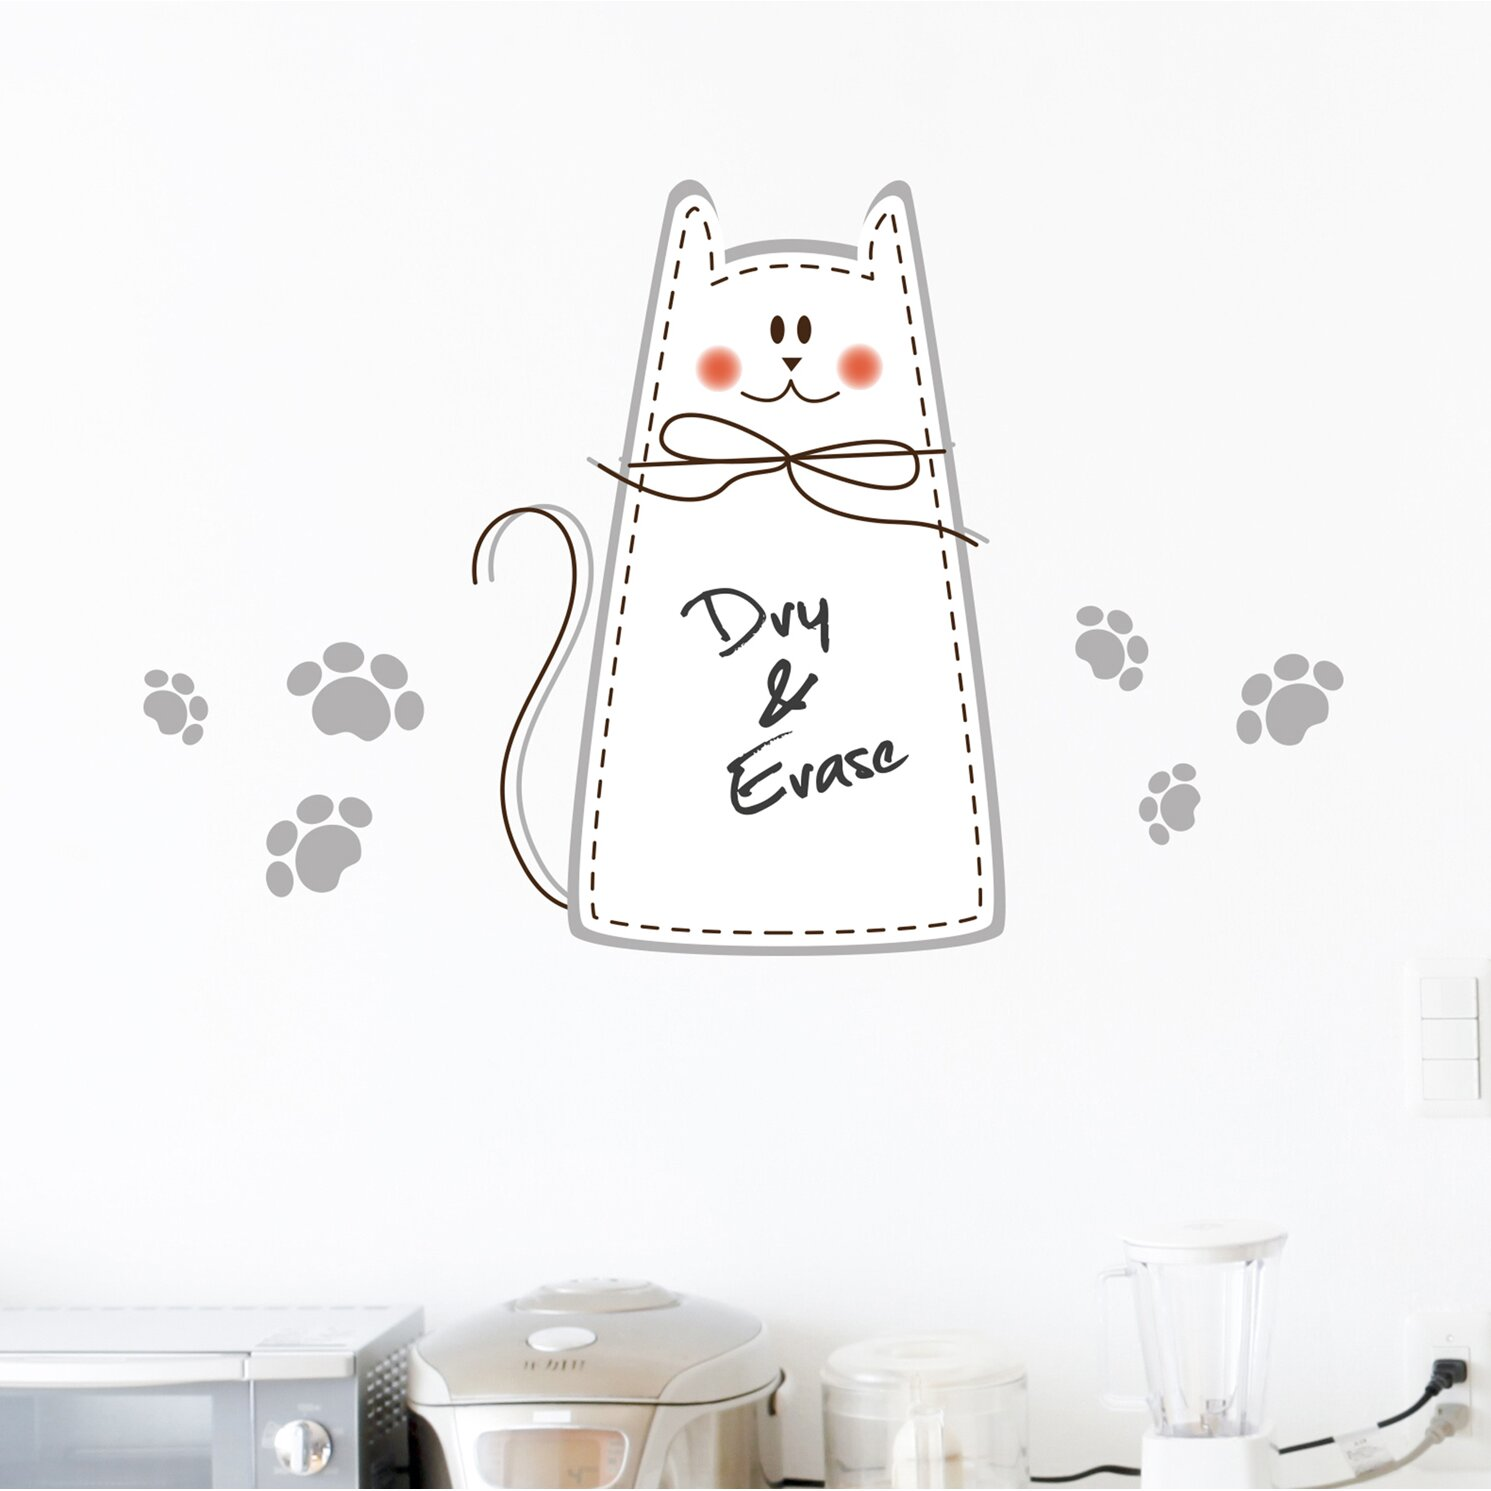 wallpops home decor line cat whiteboard wall decal